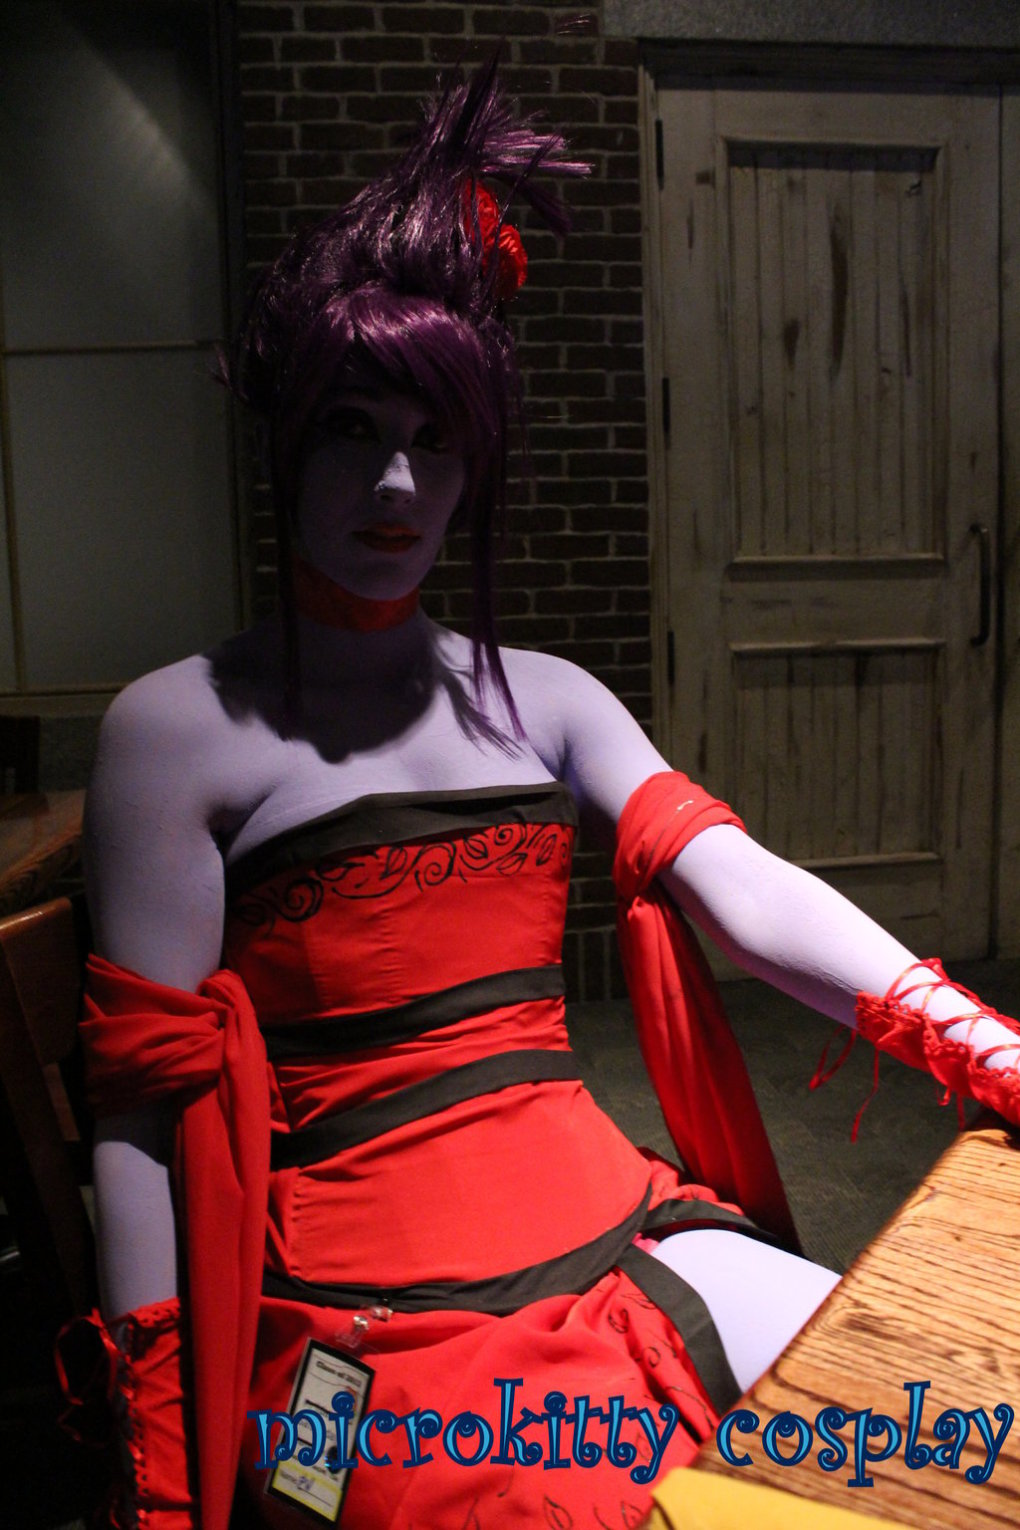 evelynn lol - ultimate league of legends cosplay collection